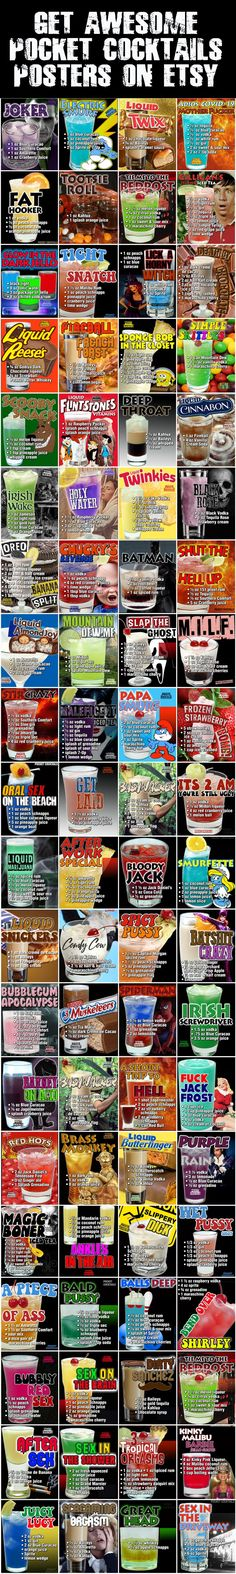 Party Drinks Alcohol, Alcohol Drink Recipes, Liquor Drinks, Beverages, Sangria Drink, Cocktail Drinks, Cocktails, Refreshing Drinks, Summer Drinks